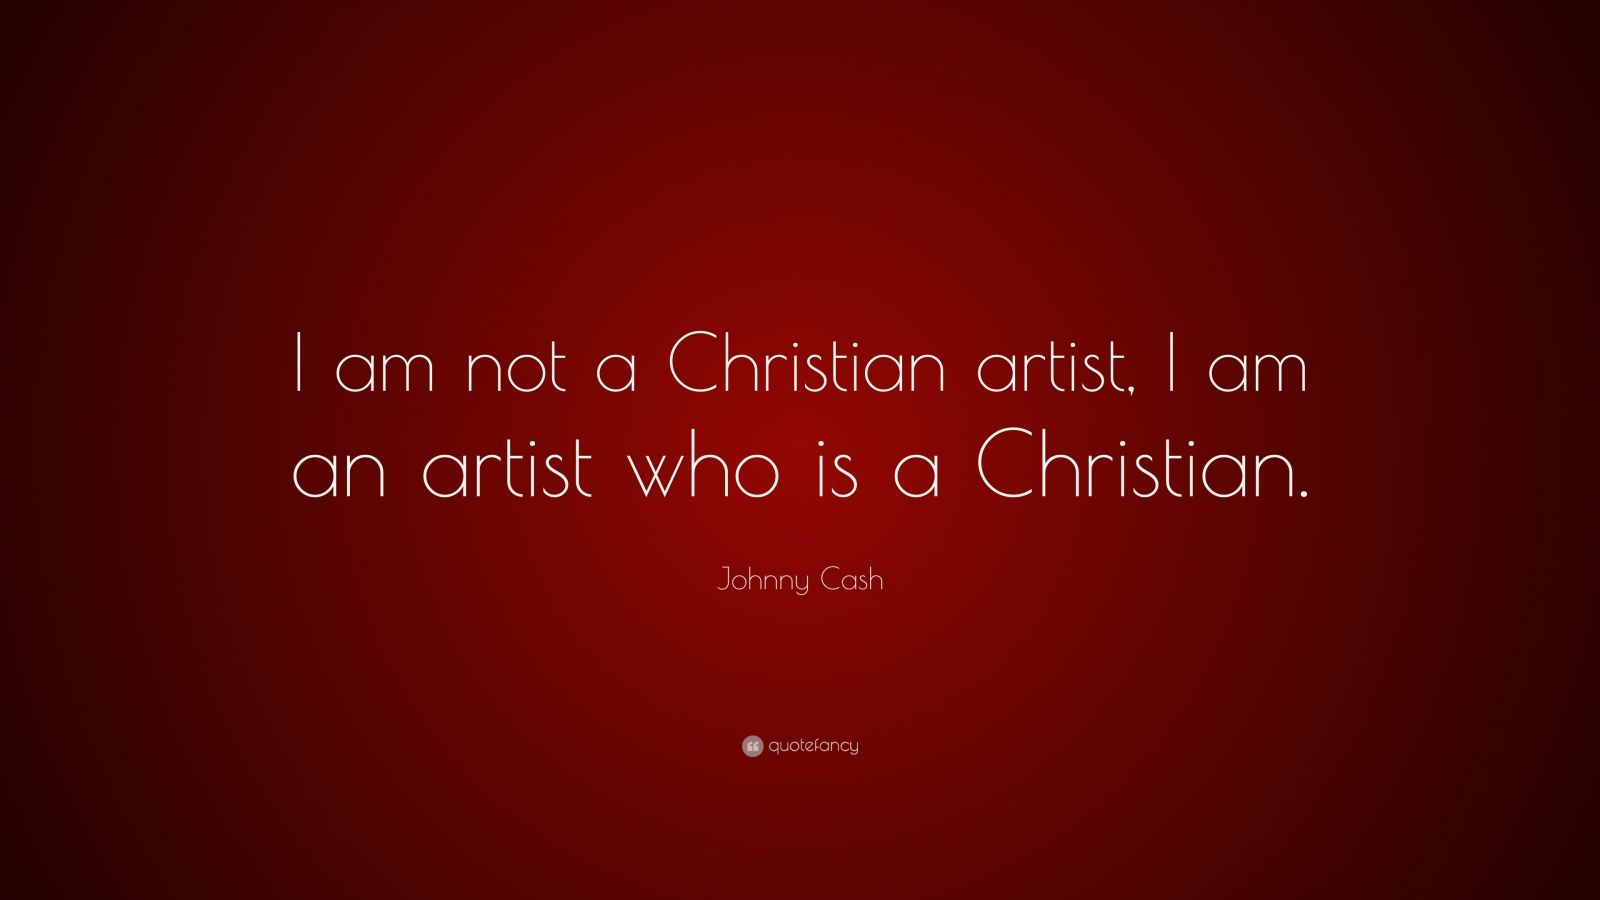 """Johnny Cash Quote: """"I am not a Christian artist, I am an artist who is a Christian."""""""